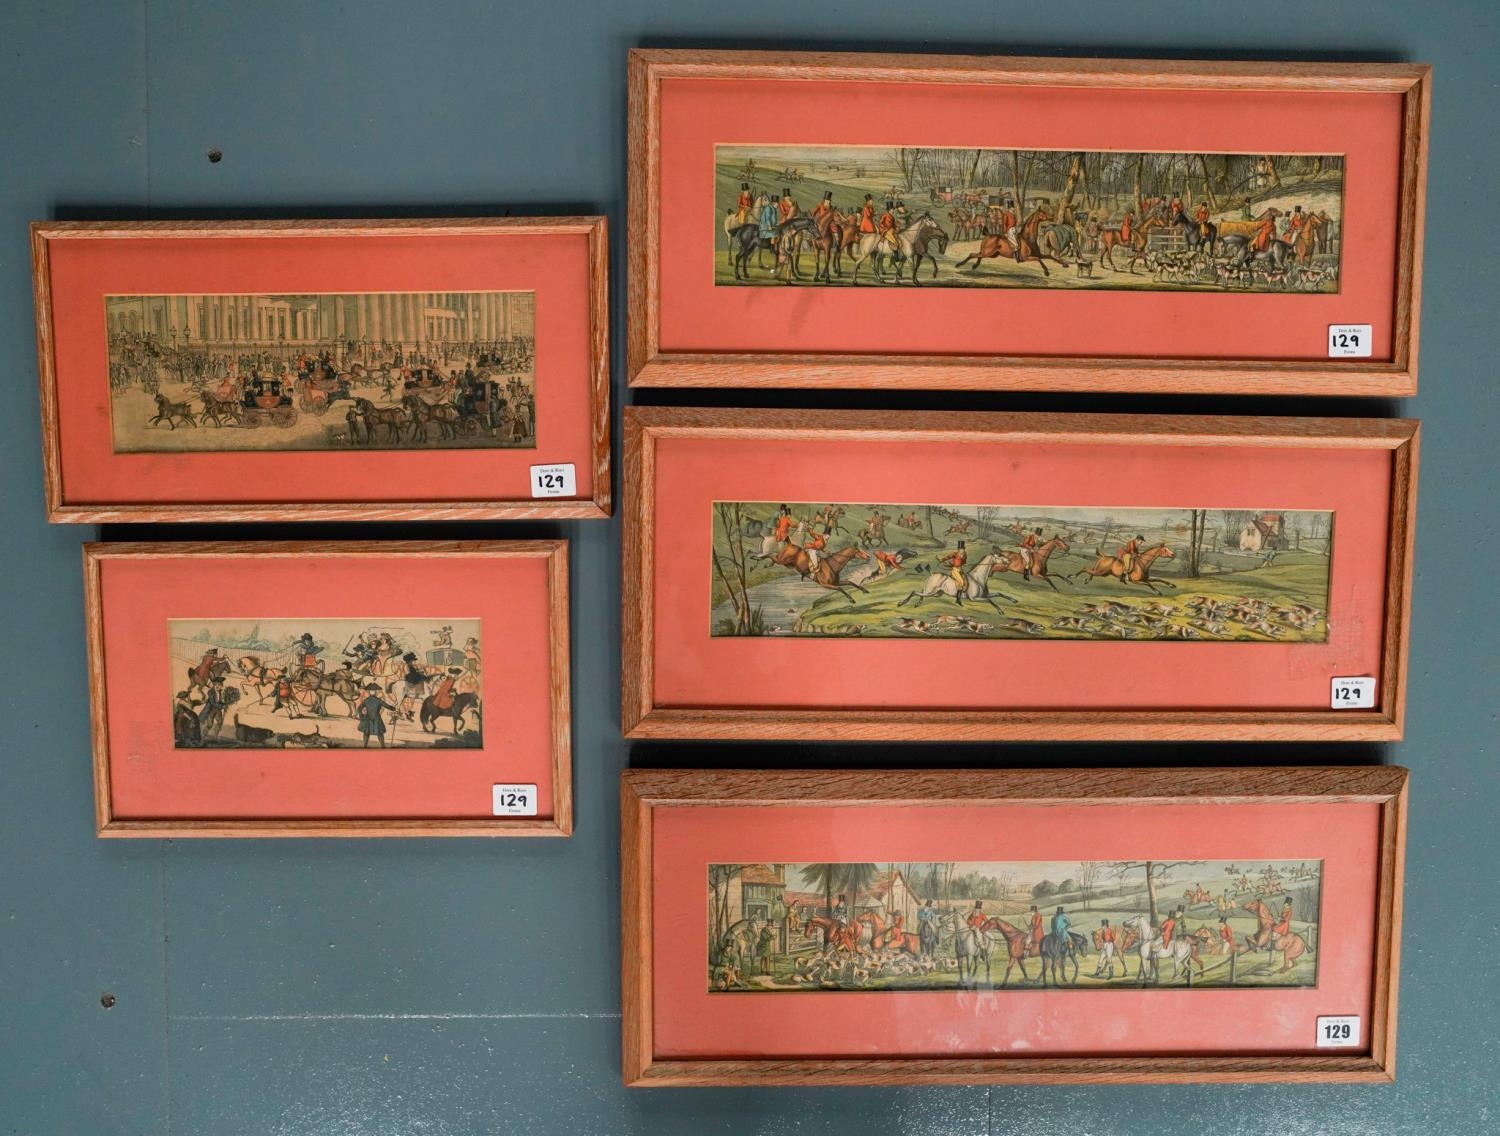 3 COLOUR LITHOGRAPHS OF HUNTING SCENES AND 2 COACHING SCENE LITHOGRAPHS, ALL IN LIMED OAK FRAMES 9cm